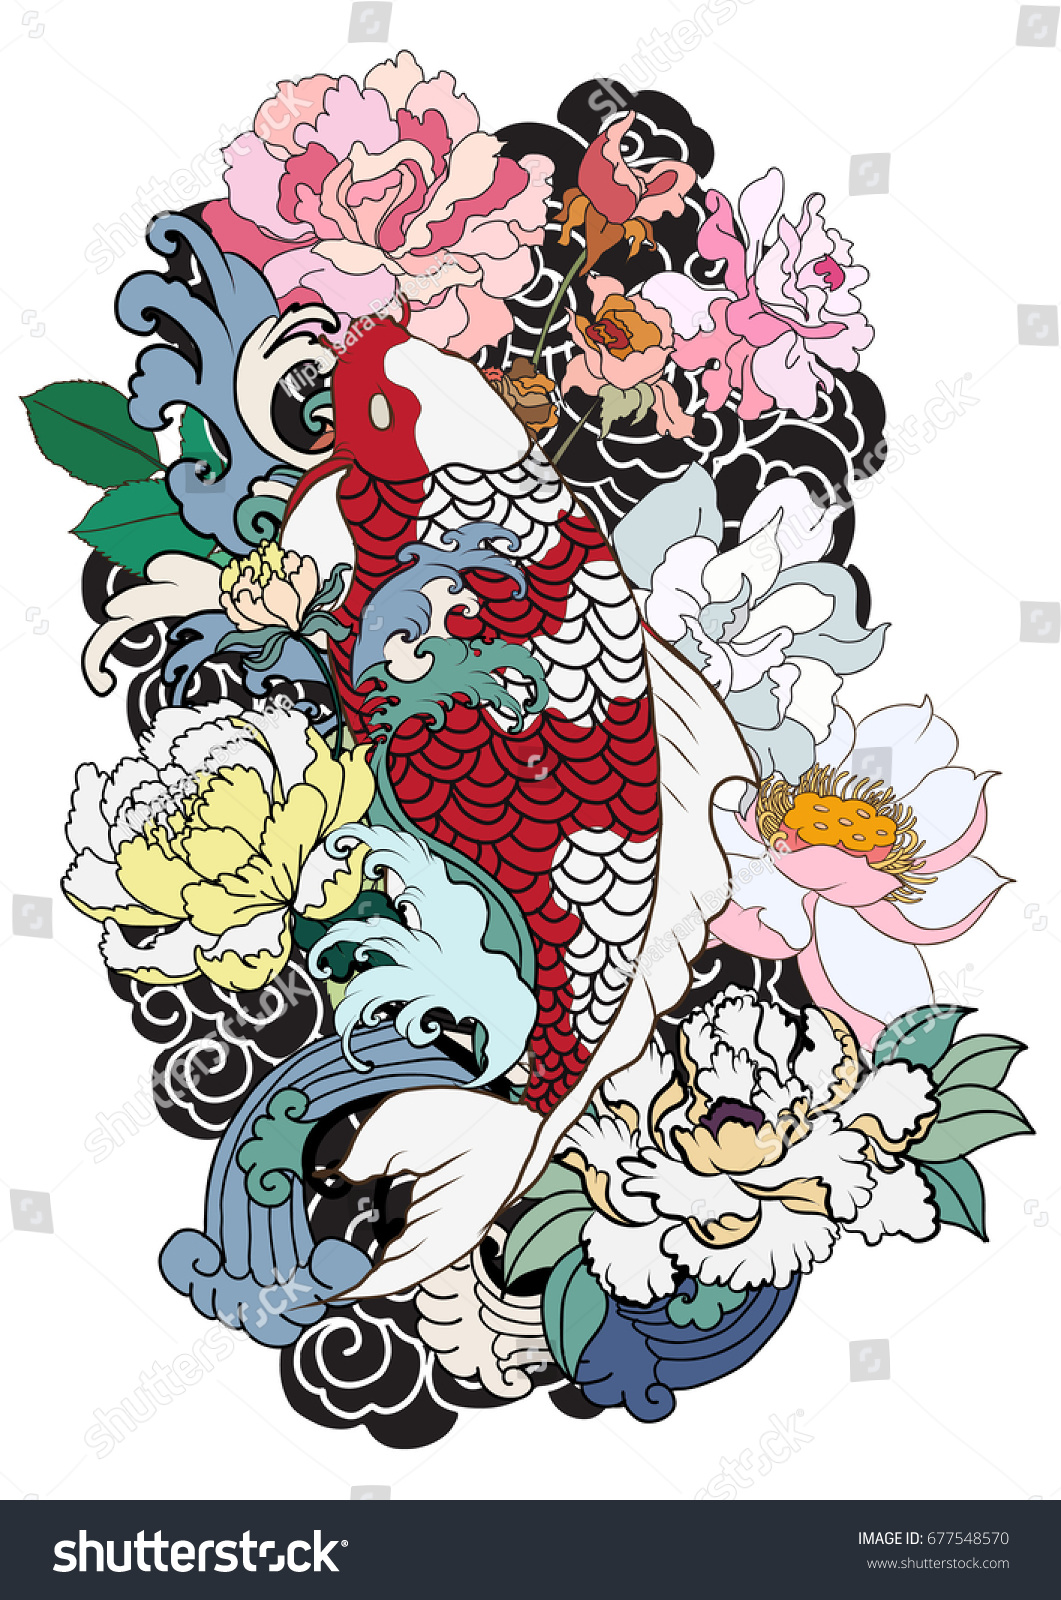 Hand Drawn Koi Fish Flower Tattoo Stock Vector 677548570 - Shutterstock